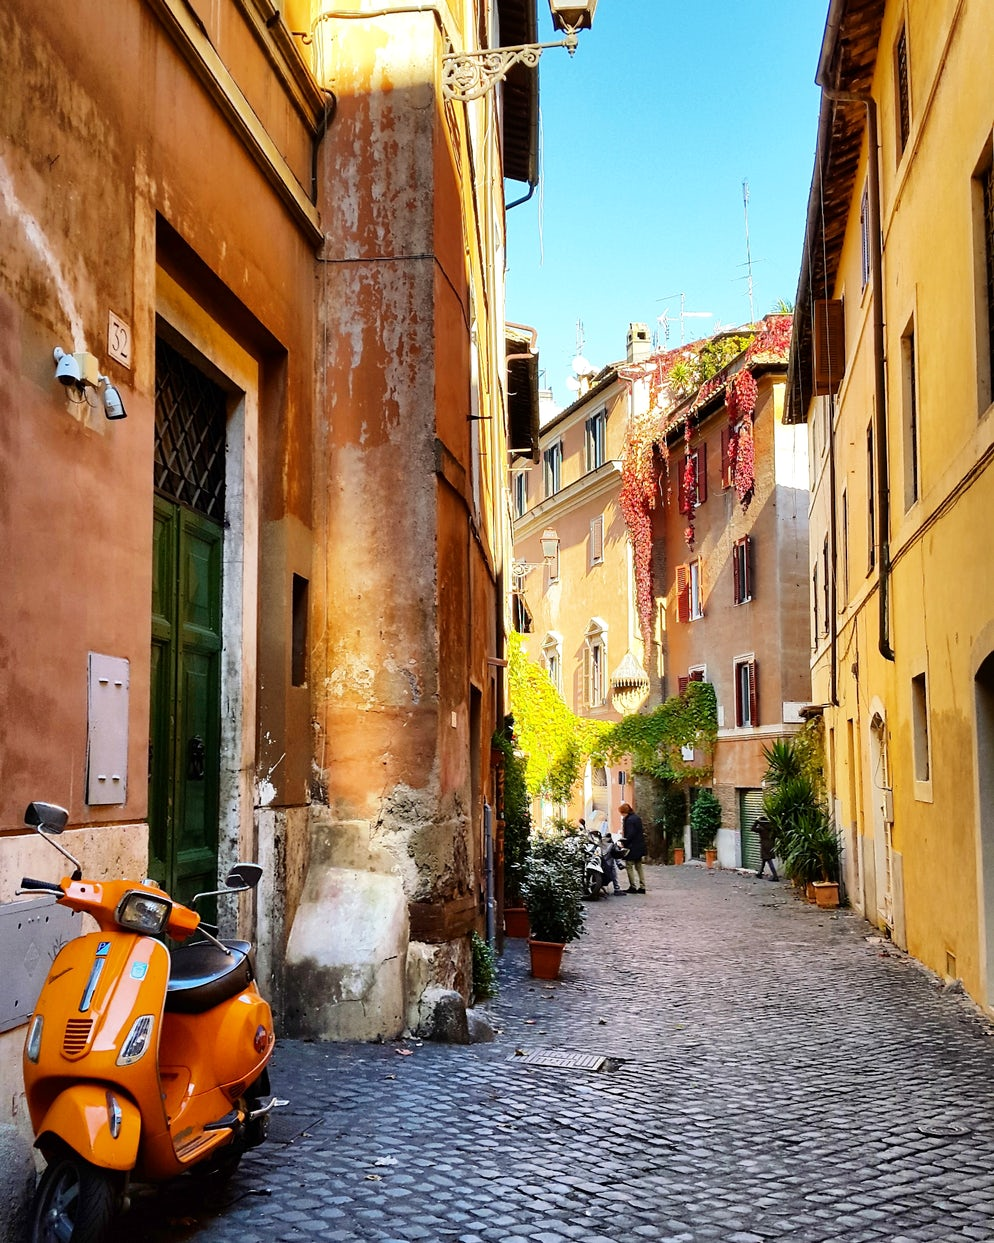 A beautiful corner, Trastevere. Photo © Vy Dan Tran.